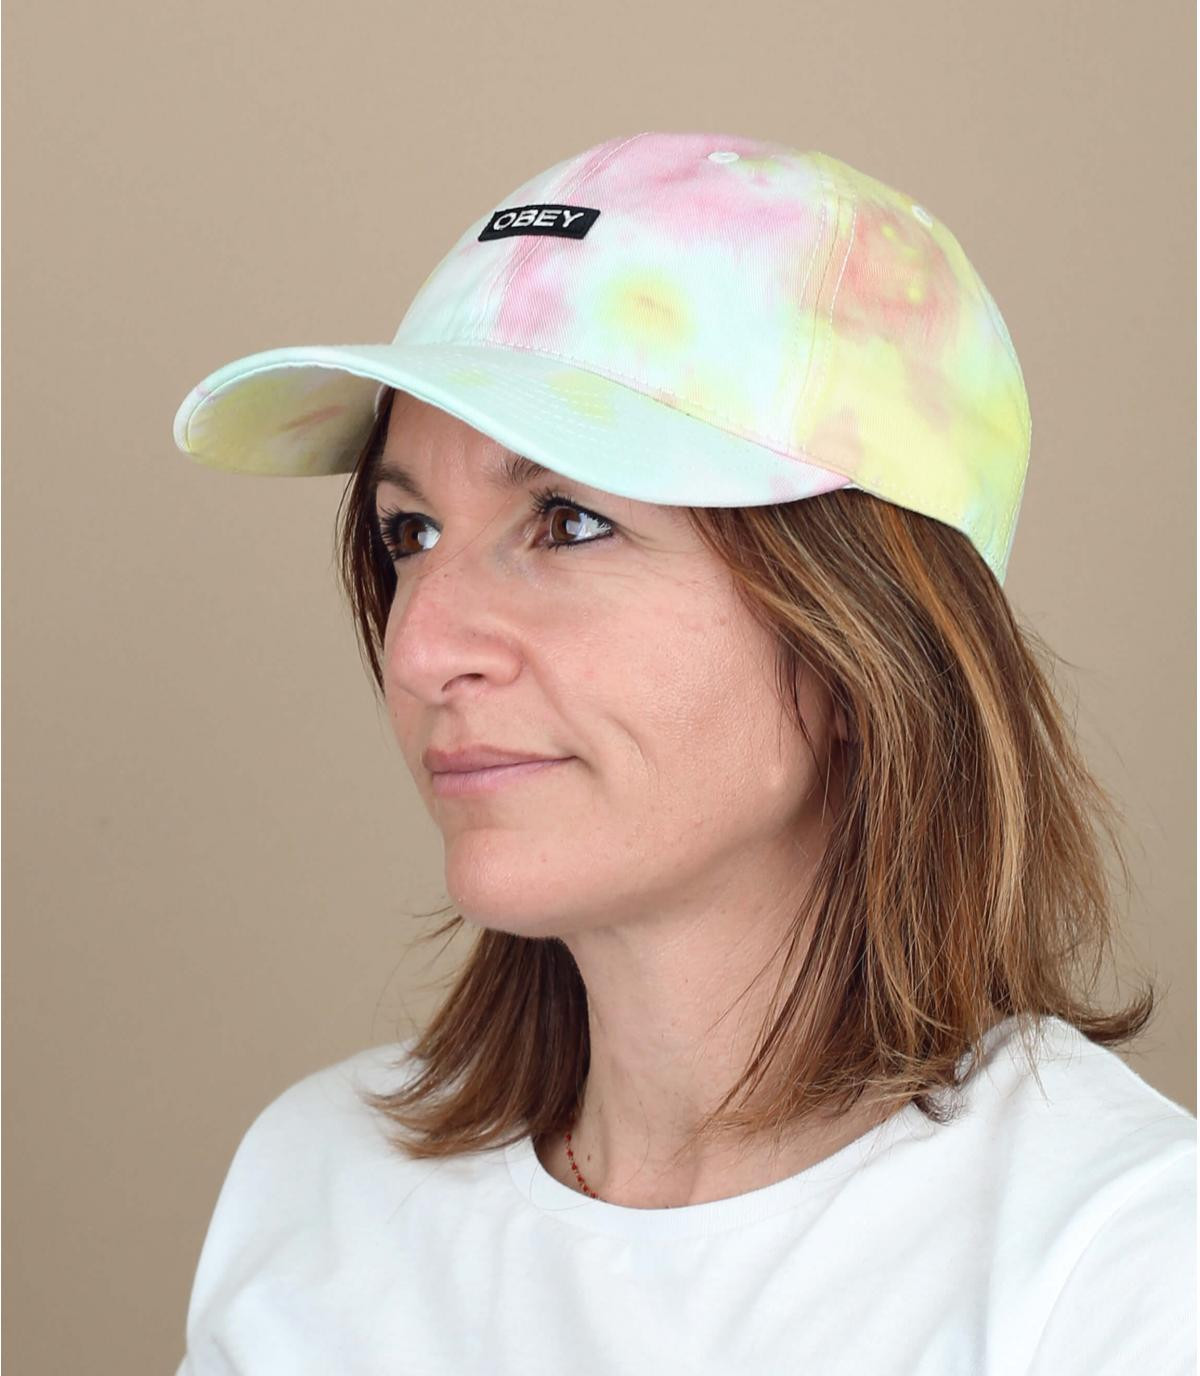 tie and dye cap Obey